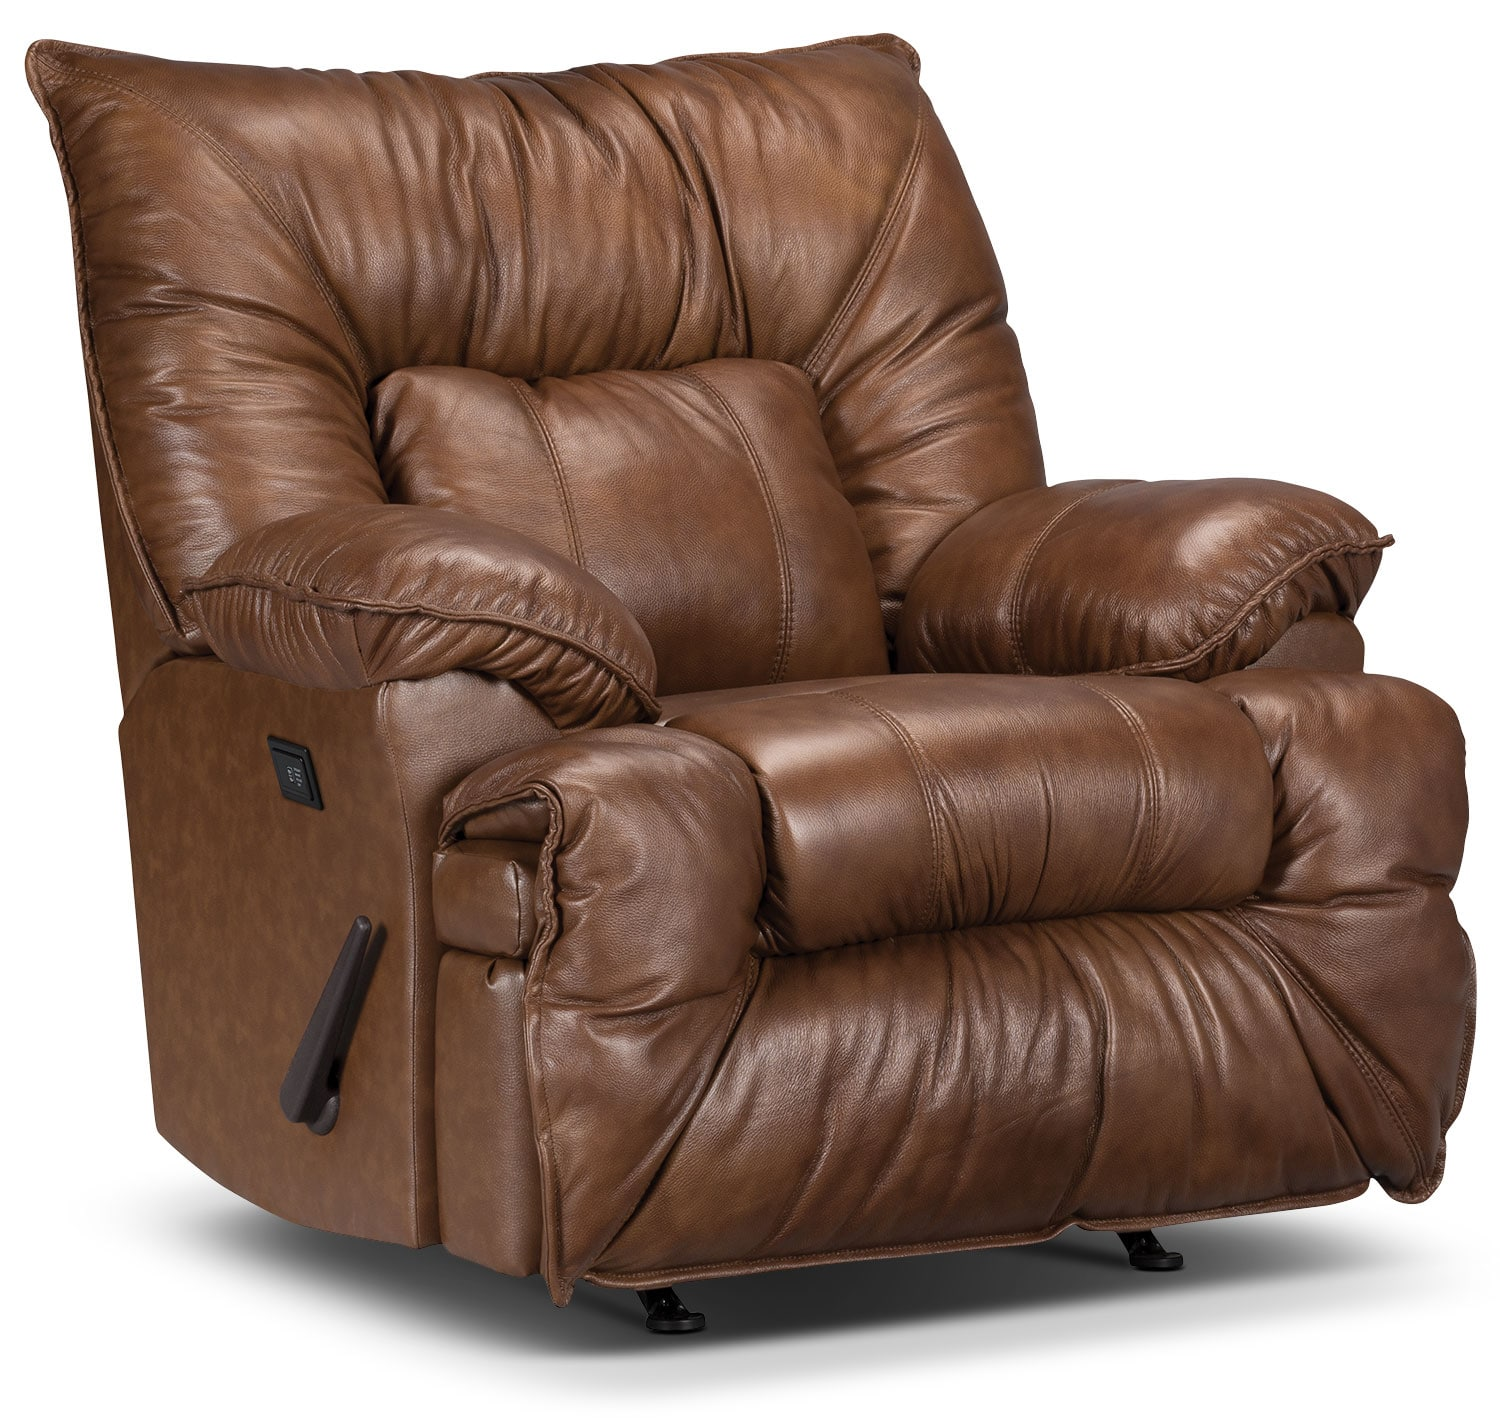 Living Room Furniture - Designed2B Recliner 7726 Genuine Leather Massage Chair - Saddle